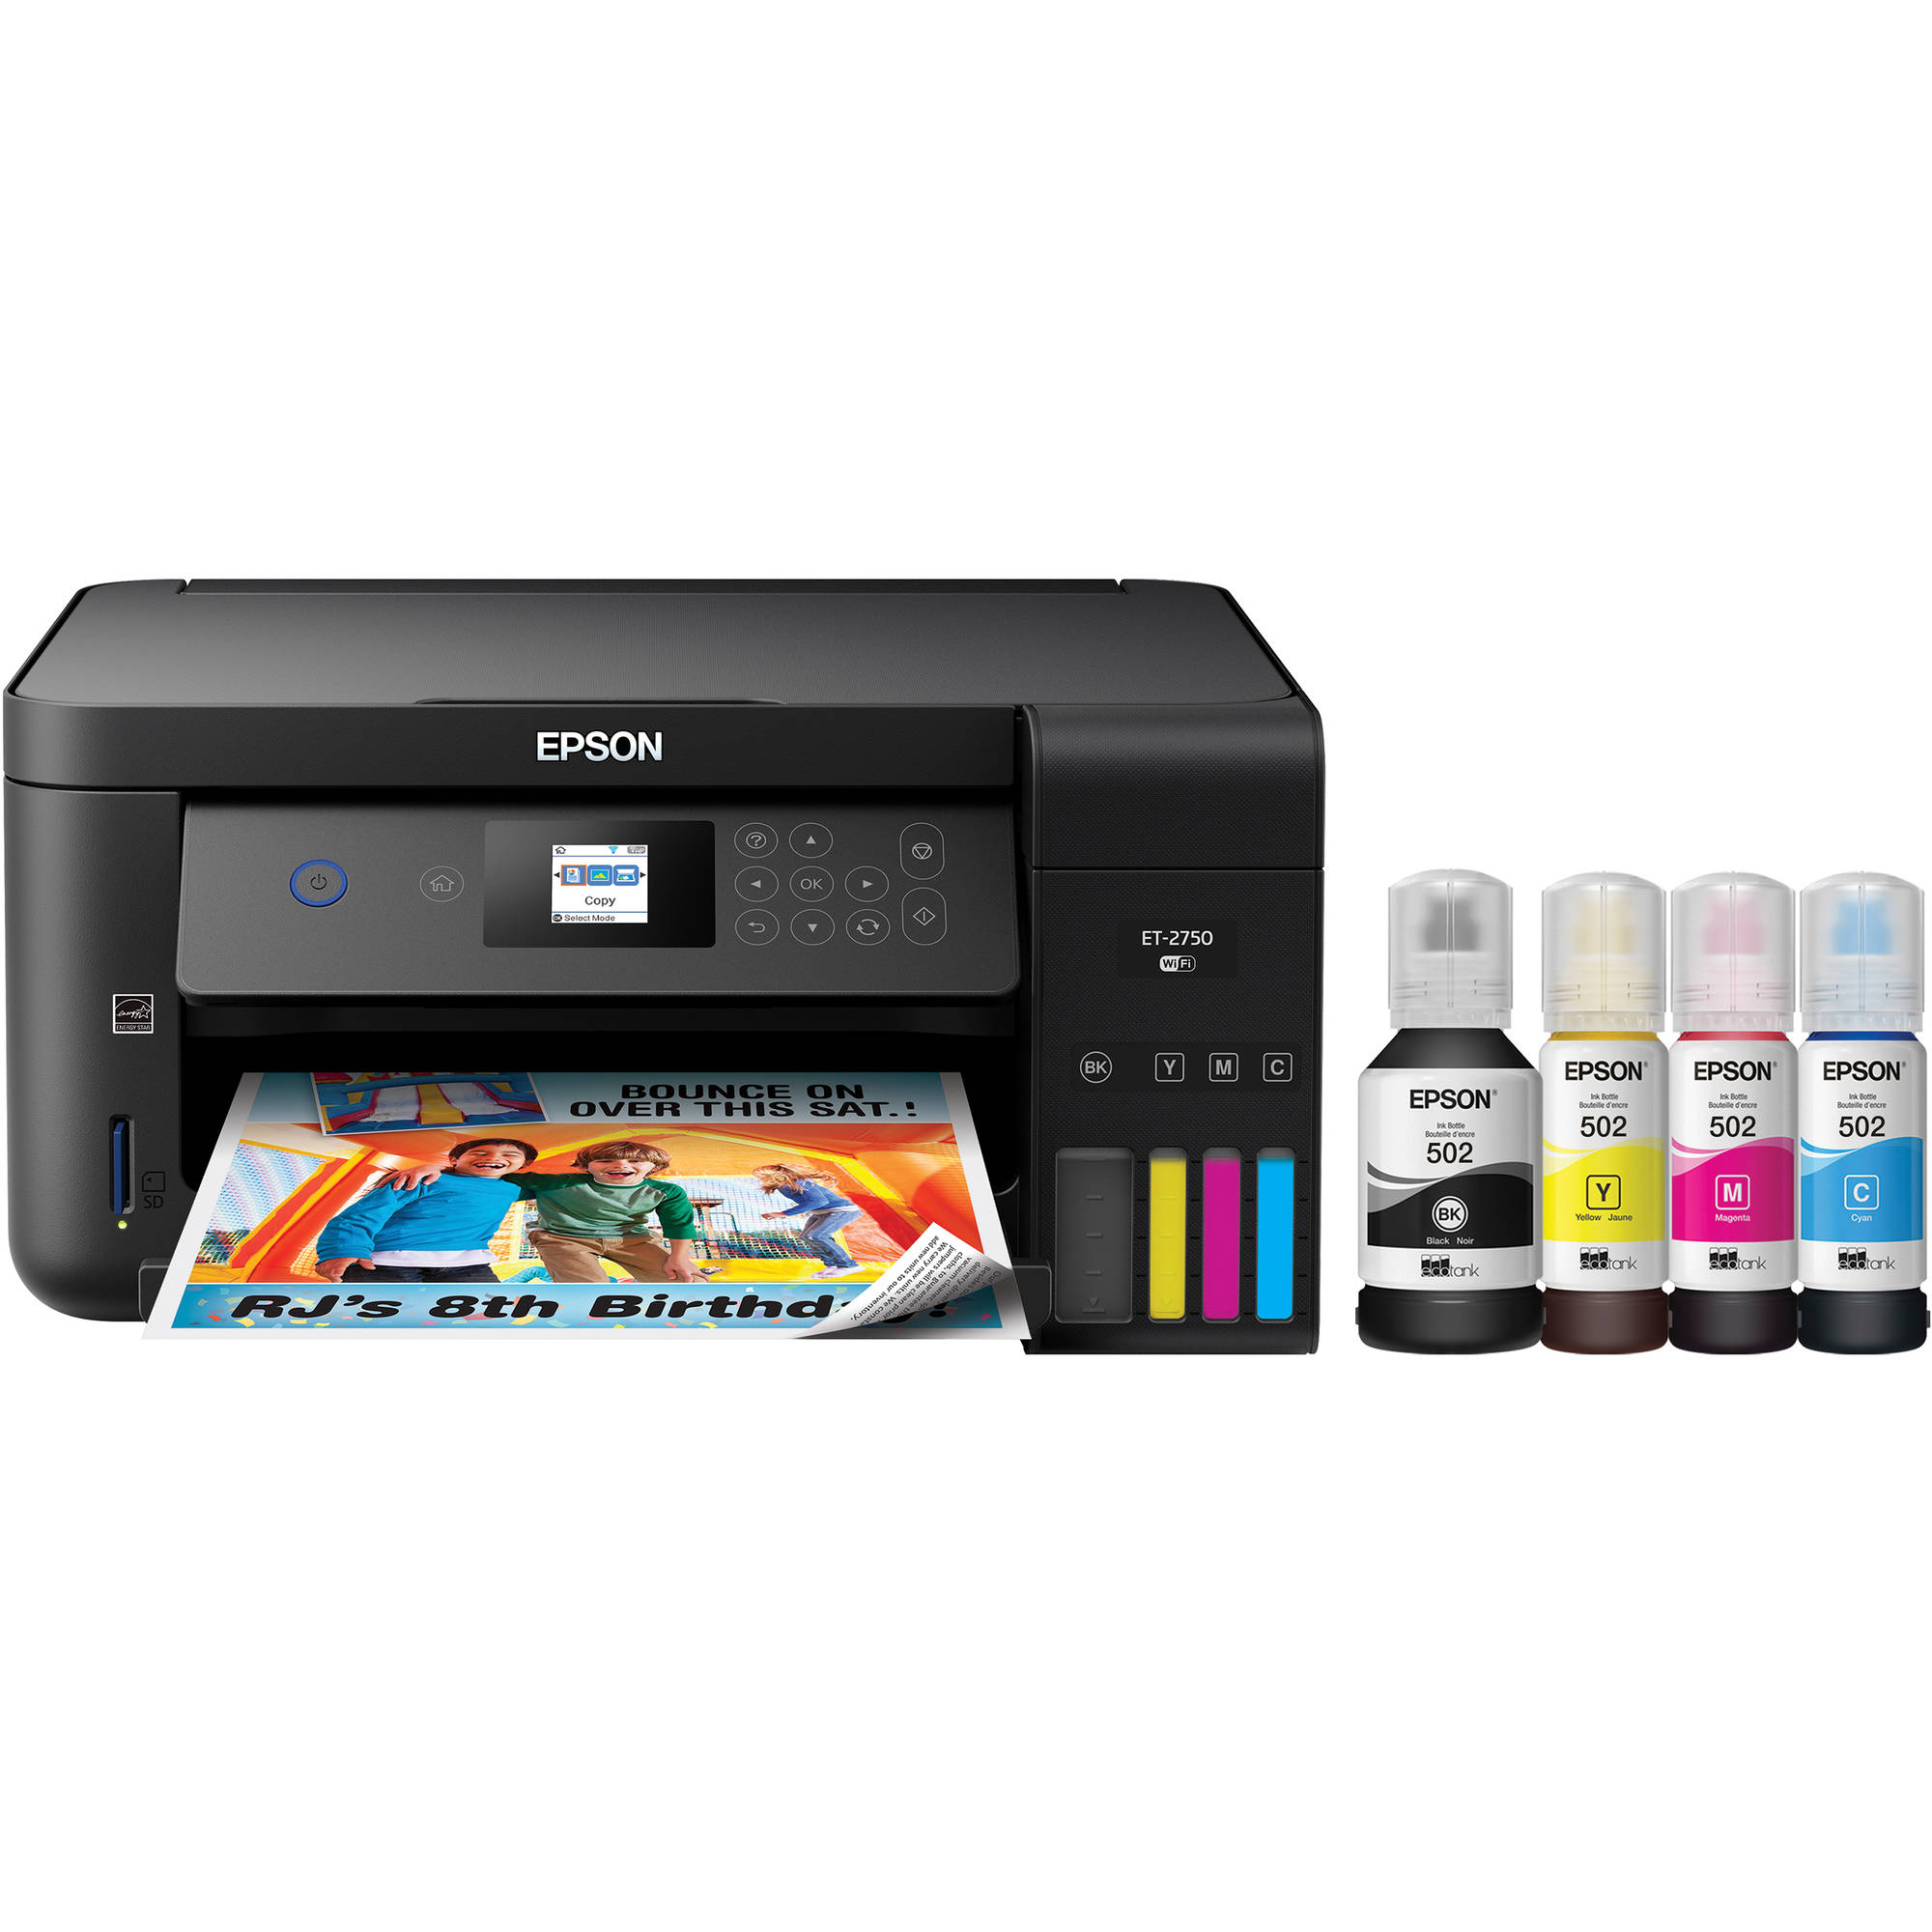 epson expression et 2750 ecotank all in one inkjet c11cg22201. Black Bedroom Furniture Sets. Home Design Ideas